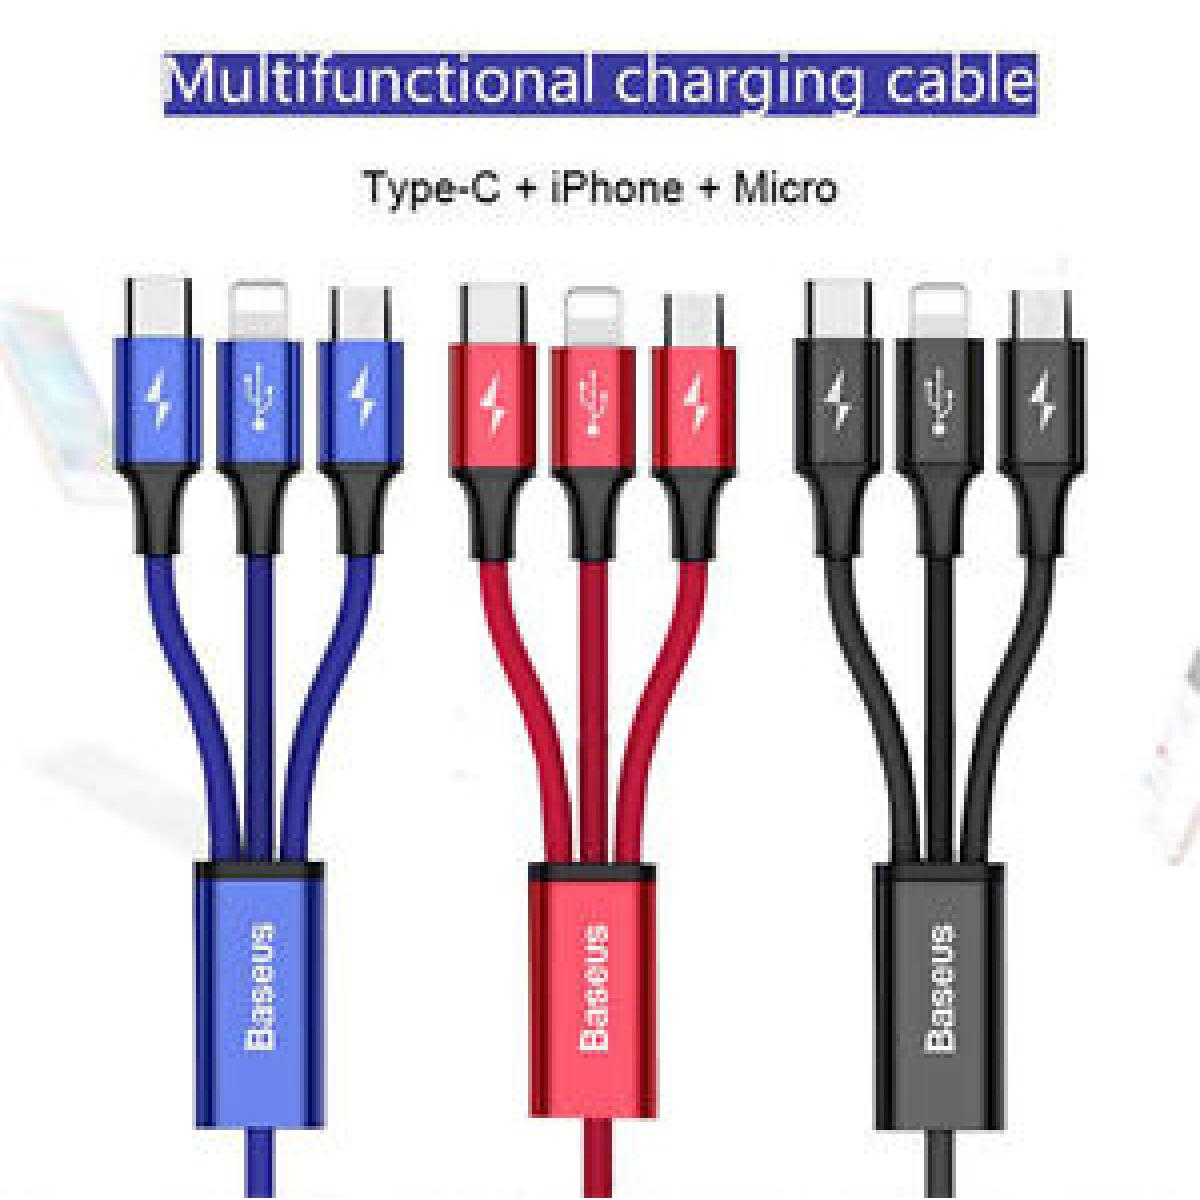 Charger Cable. Source · MULTIMEDIA-1200x1200.jpg .